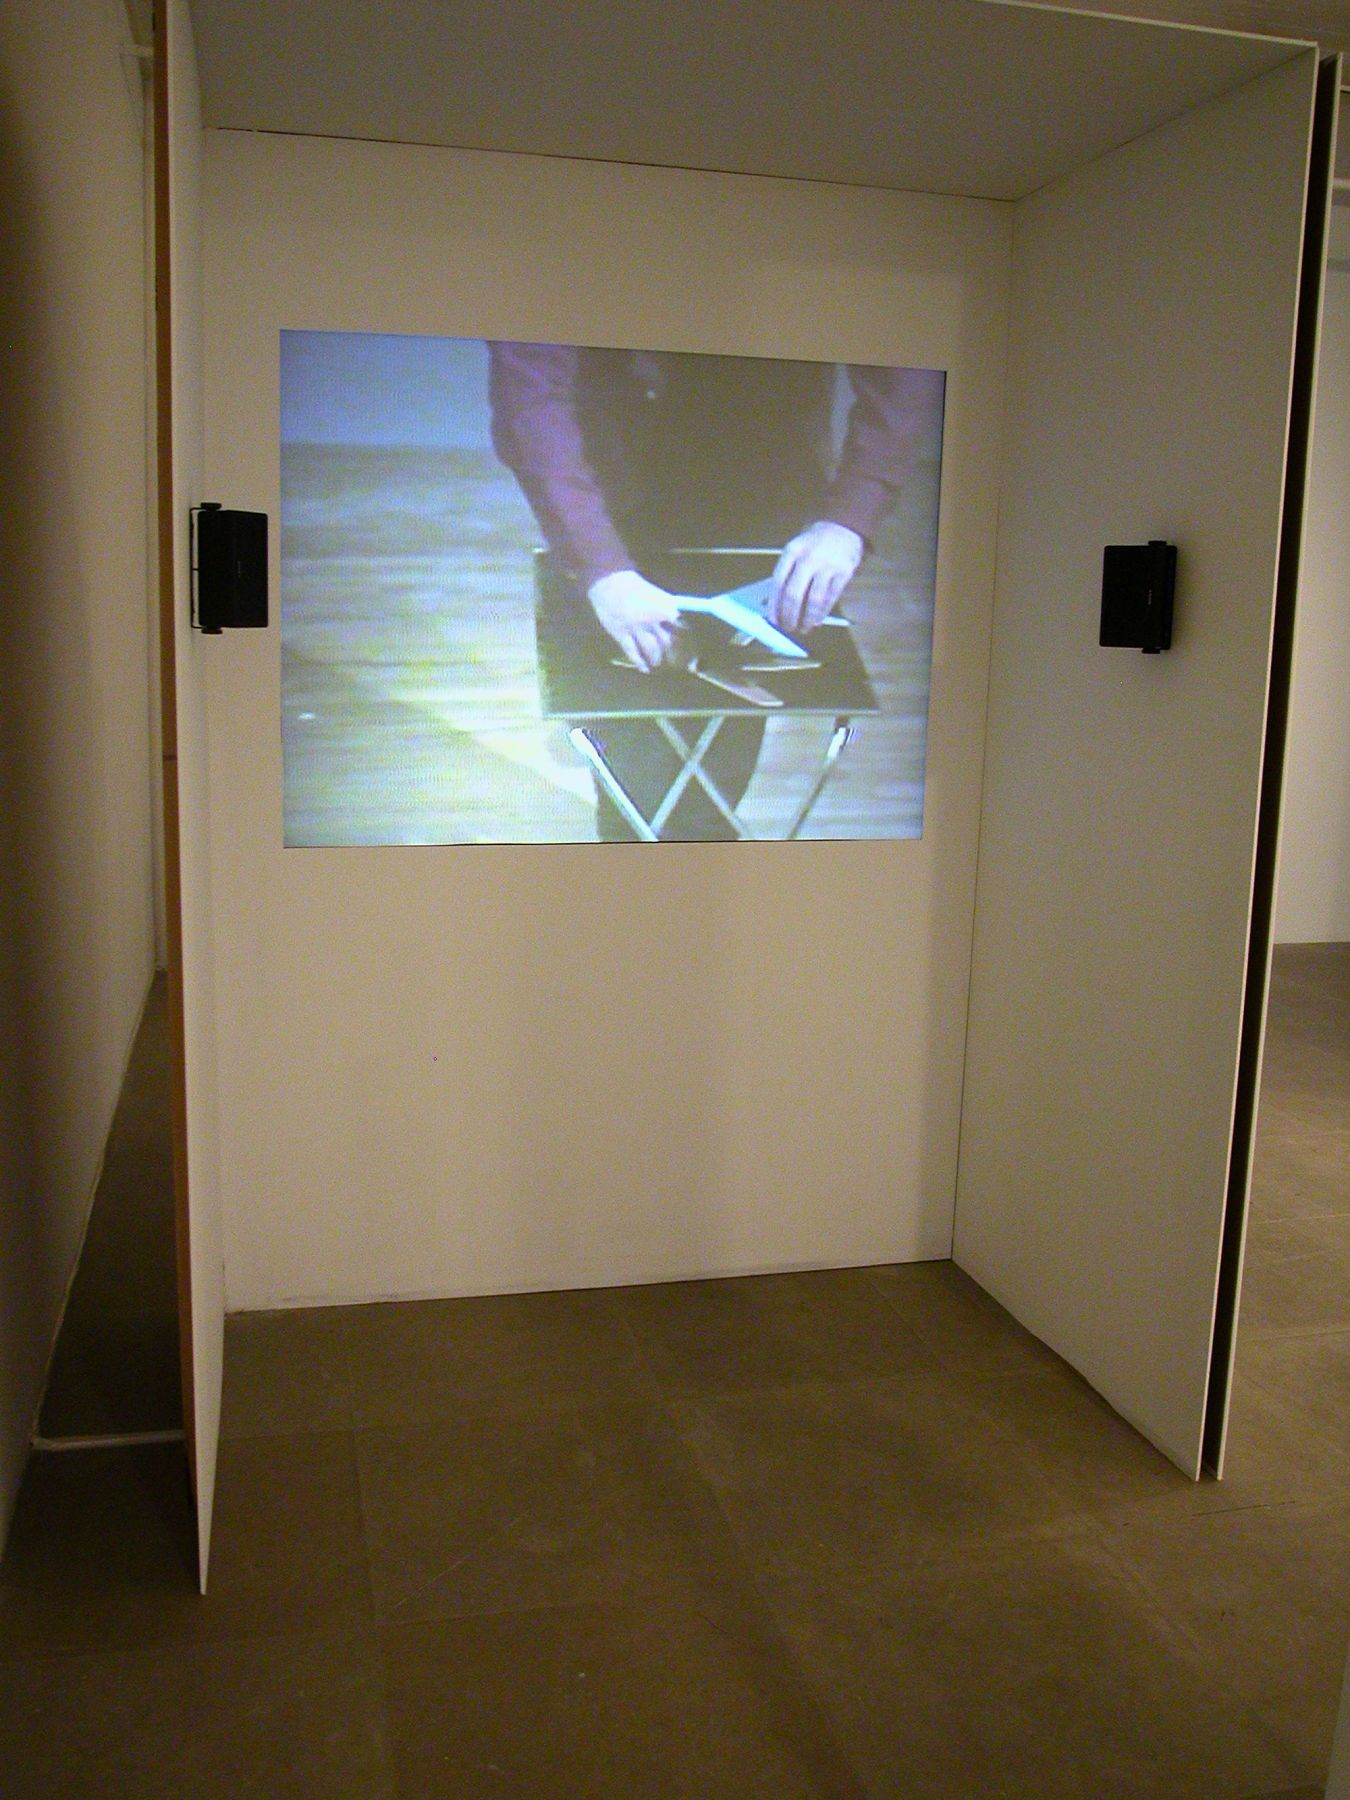 Stuart Sherman, 12th Spectacle (Language), 1980, video, Installation view, Greene Naftali, New York, 2006